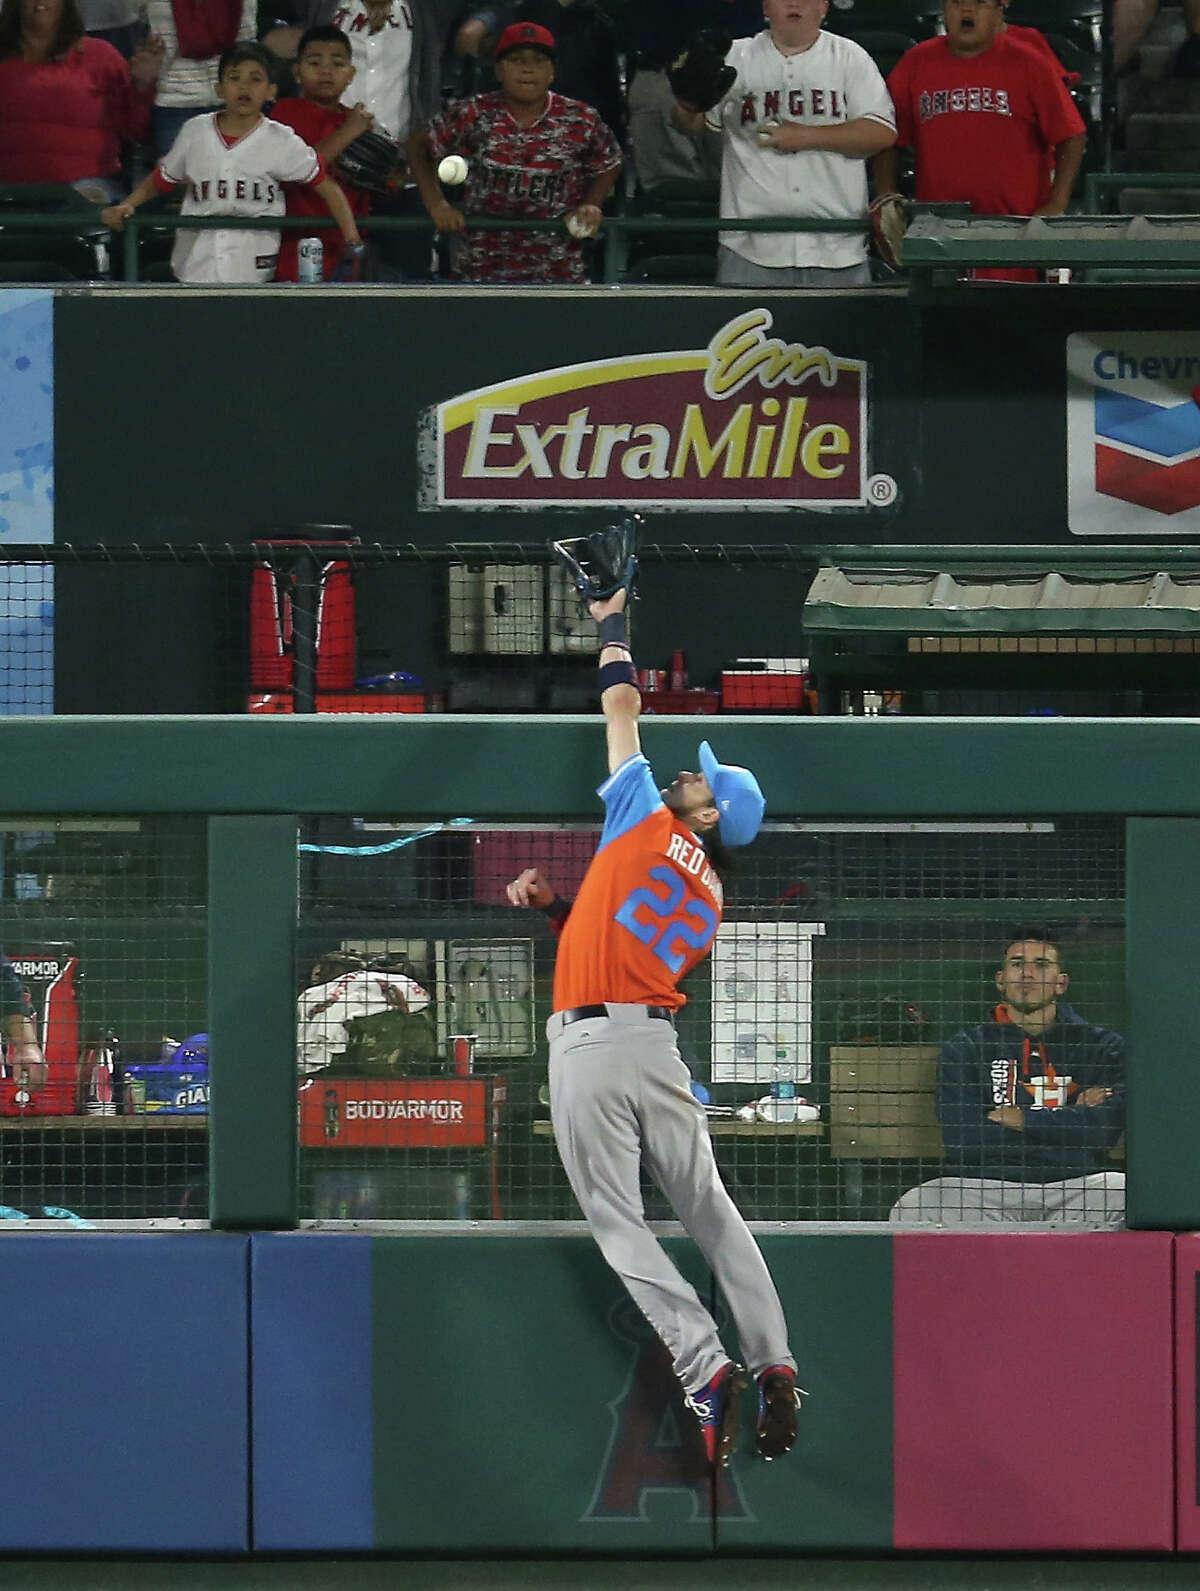 ANAHEIM, CA - AUGUST 26: Left fielder Josh Reddick #22 of the Houston Astros jumps but can't reach an eighth inning three run home run by Andrelton Simmons #2 of the Los Angeles Angels of Anaheim to give the Angels the lead on August 26, 2017 at Angel Stadium of Anaheim in Anaheim, California. (Photo by Stephen Dunn/Getty Images)